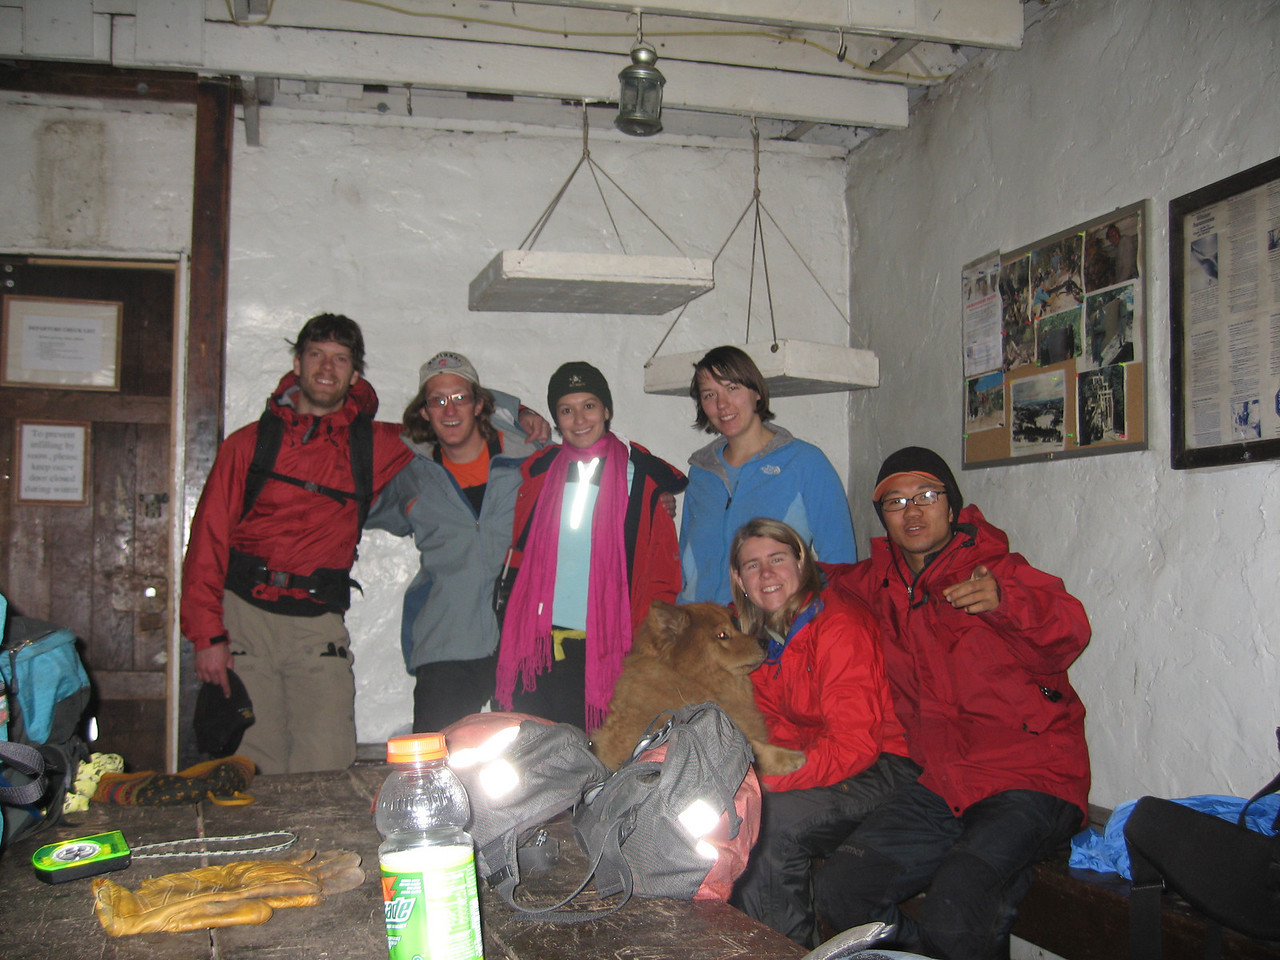 3rd year - Group shot inside the hut.